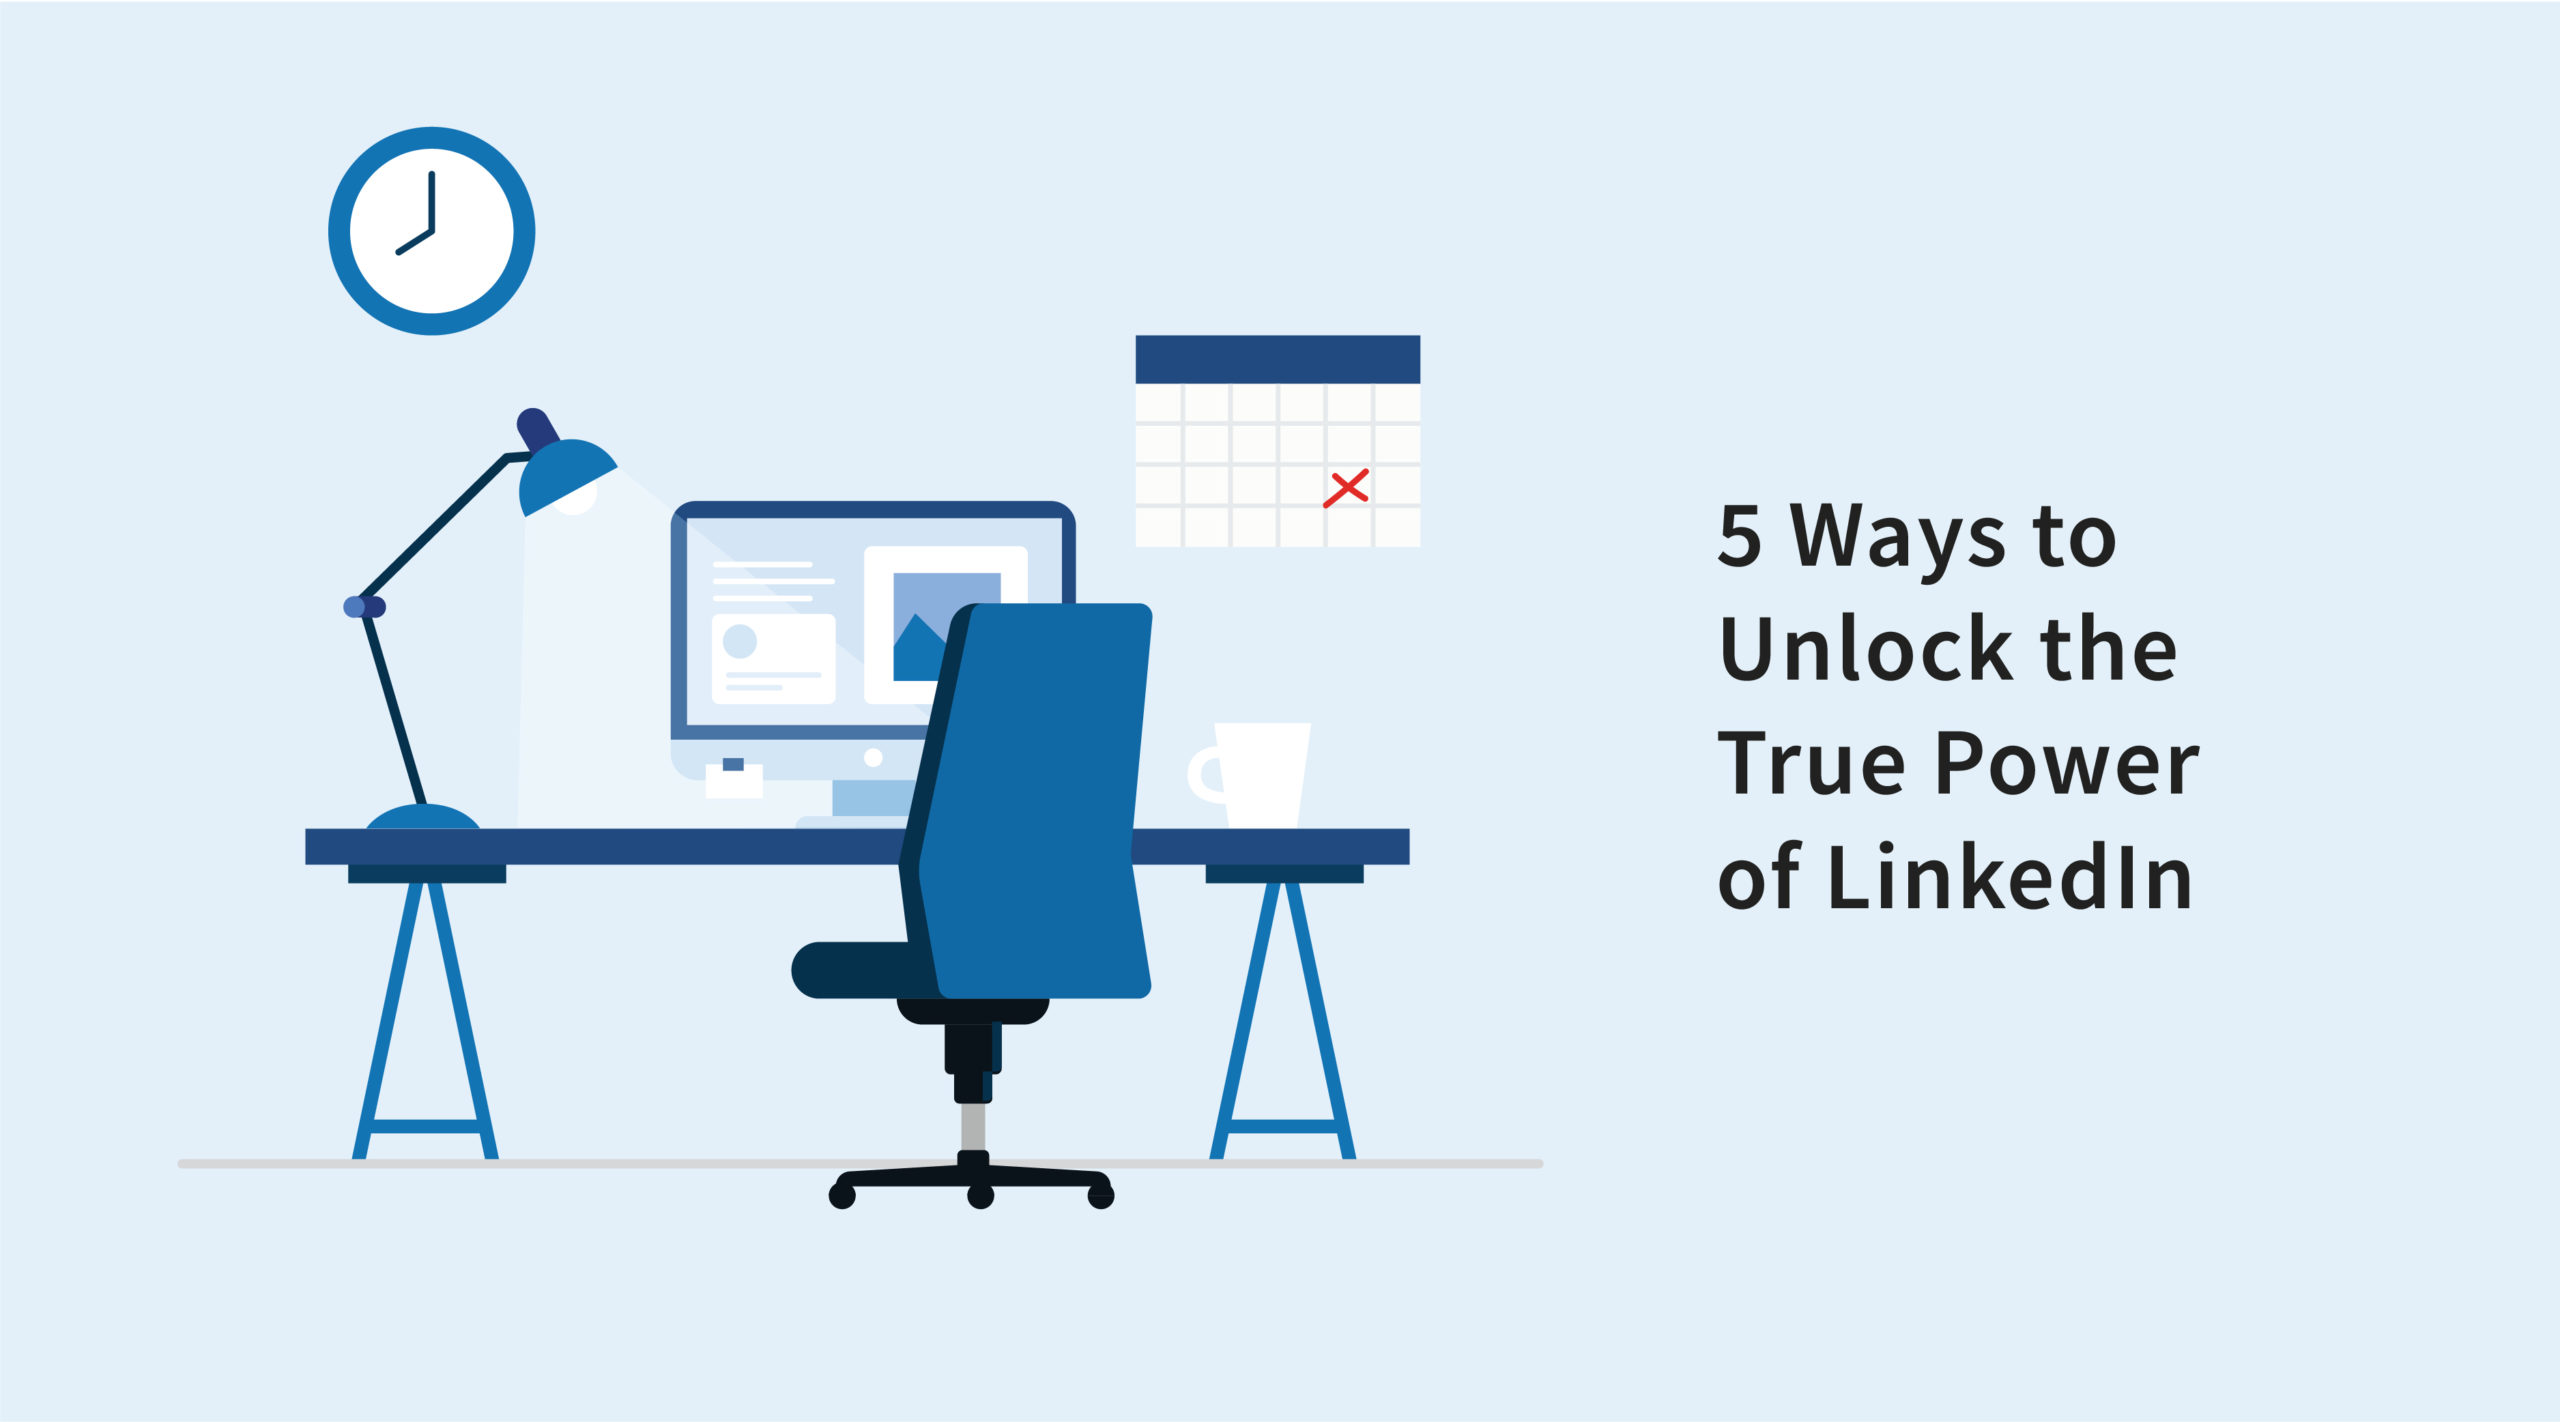 5 Ways to Unlock the True Power of LinkedIn